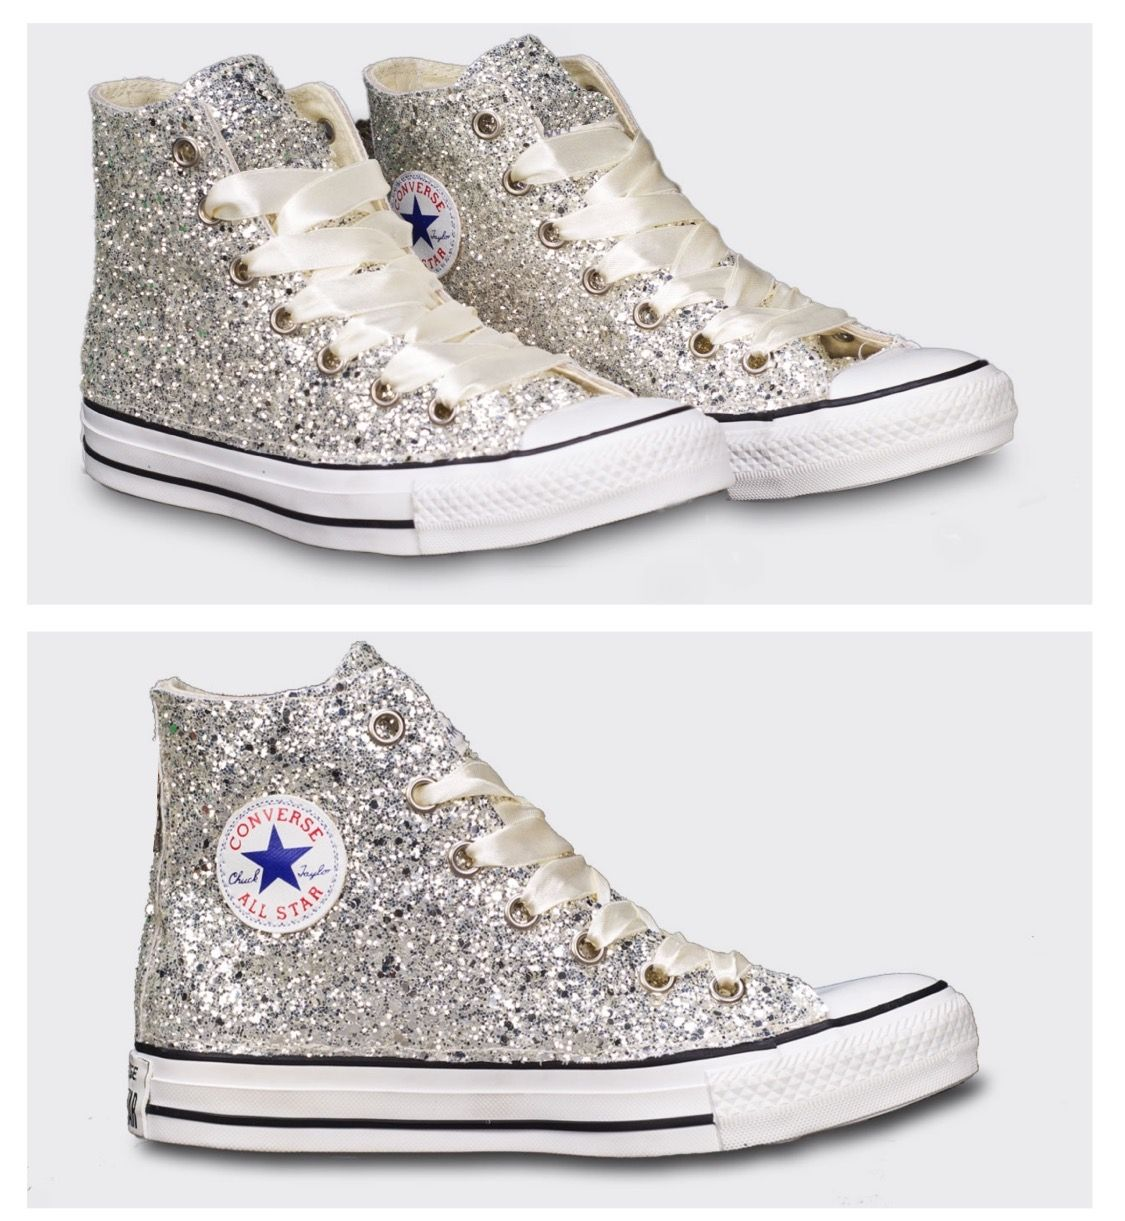 6b2f96a221d1 Sparky Silver Glitter Converse All Star High Top or Wedge! All Wedding  Colors available. www.glittershoeco.com